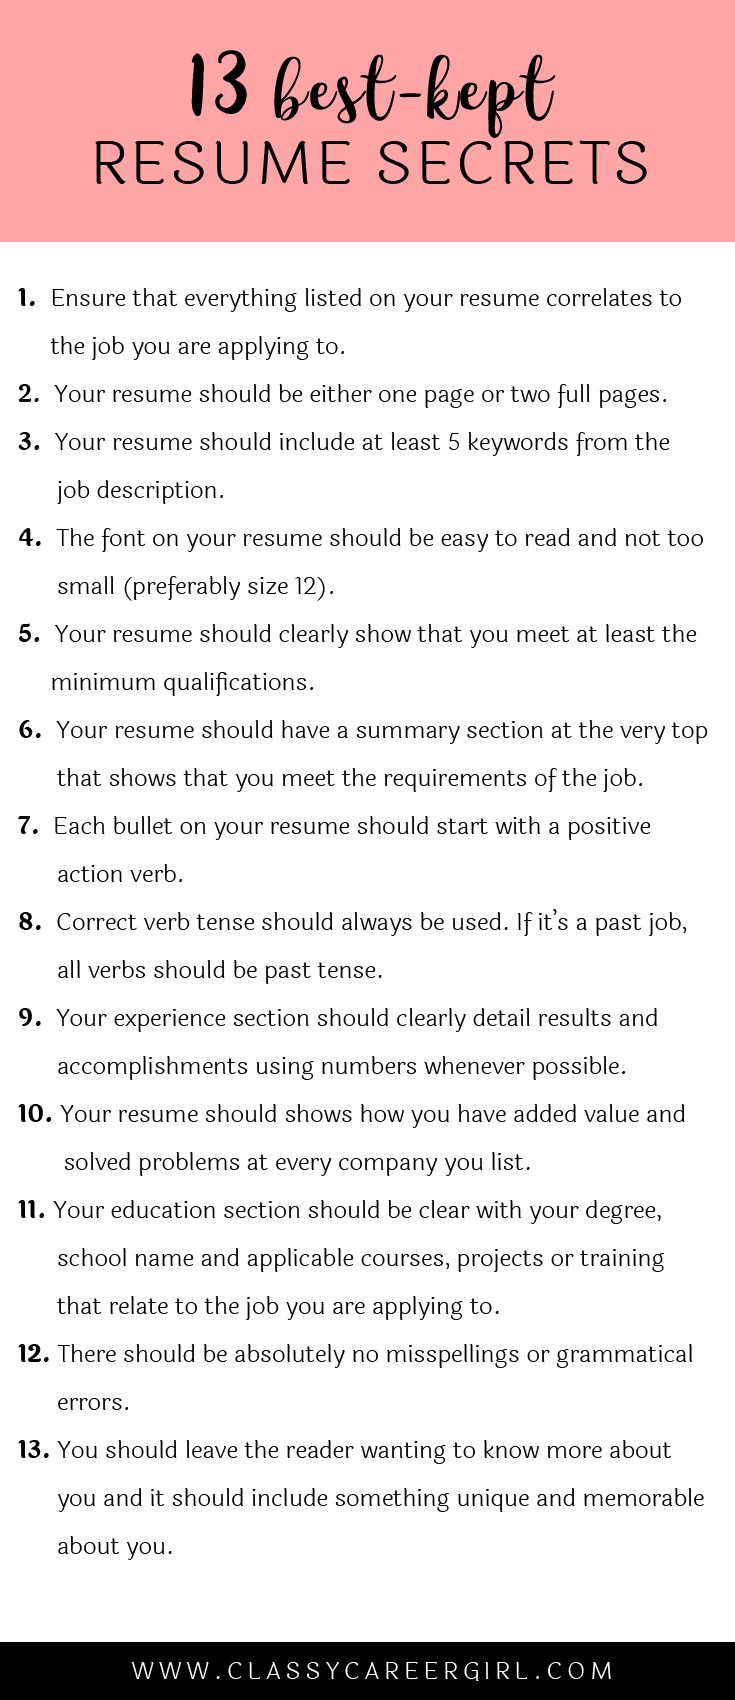 Picnictoimpeachus  Surprising  Ideas About Resume On Pinterest  Cv Format Resume Cv And  With Foxy Some Hiring Managers Will Toss Your Resume Out If You Dont Know These  With Easy On The Eye Resume Templates Examples Also Good Resume Verbs In Addition Gis Resume And Cover Letter And Resume Examples As Well As Technology Resume Additionally Resume More Than One Page From Pinterestcom With Picnictoimpeachus  Foxy  Ideas About Resume On Pinterest  Cv Format Resume Cv And  With Easy On The Eye Some Hiring Managers Will Toss Your Resume Out If You Dont Know These  And Surprising Resume Templates Examples Also Good Resume Verbs In Addition Gis Resume From Pinterestcom